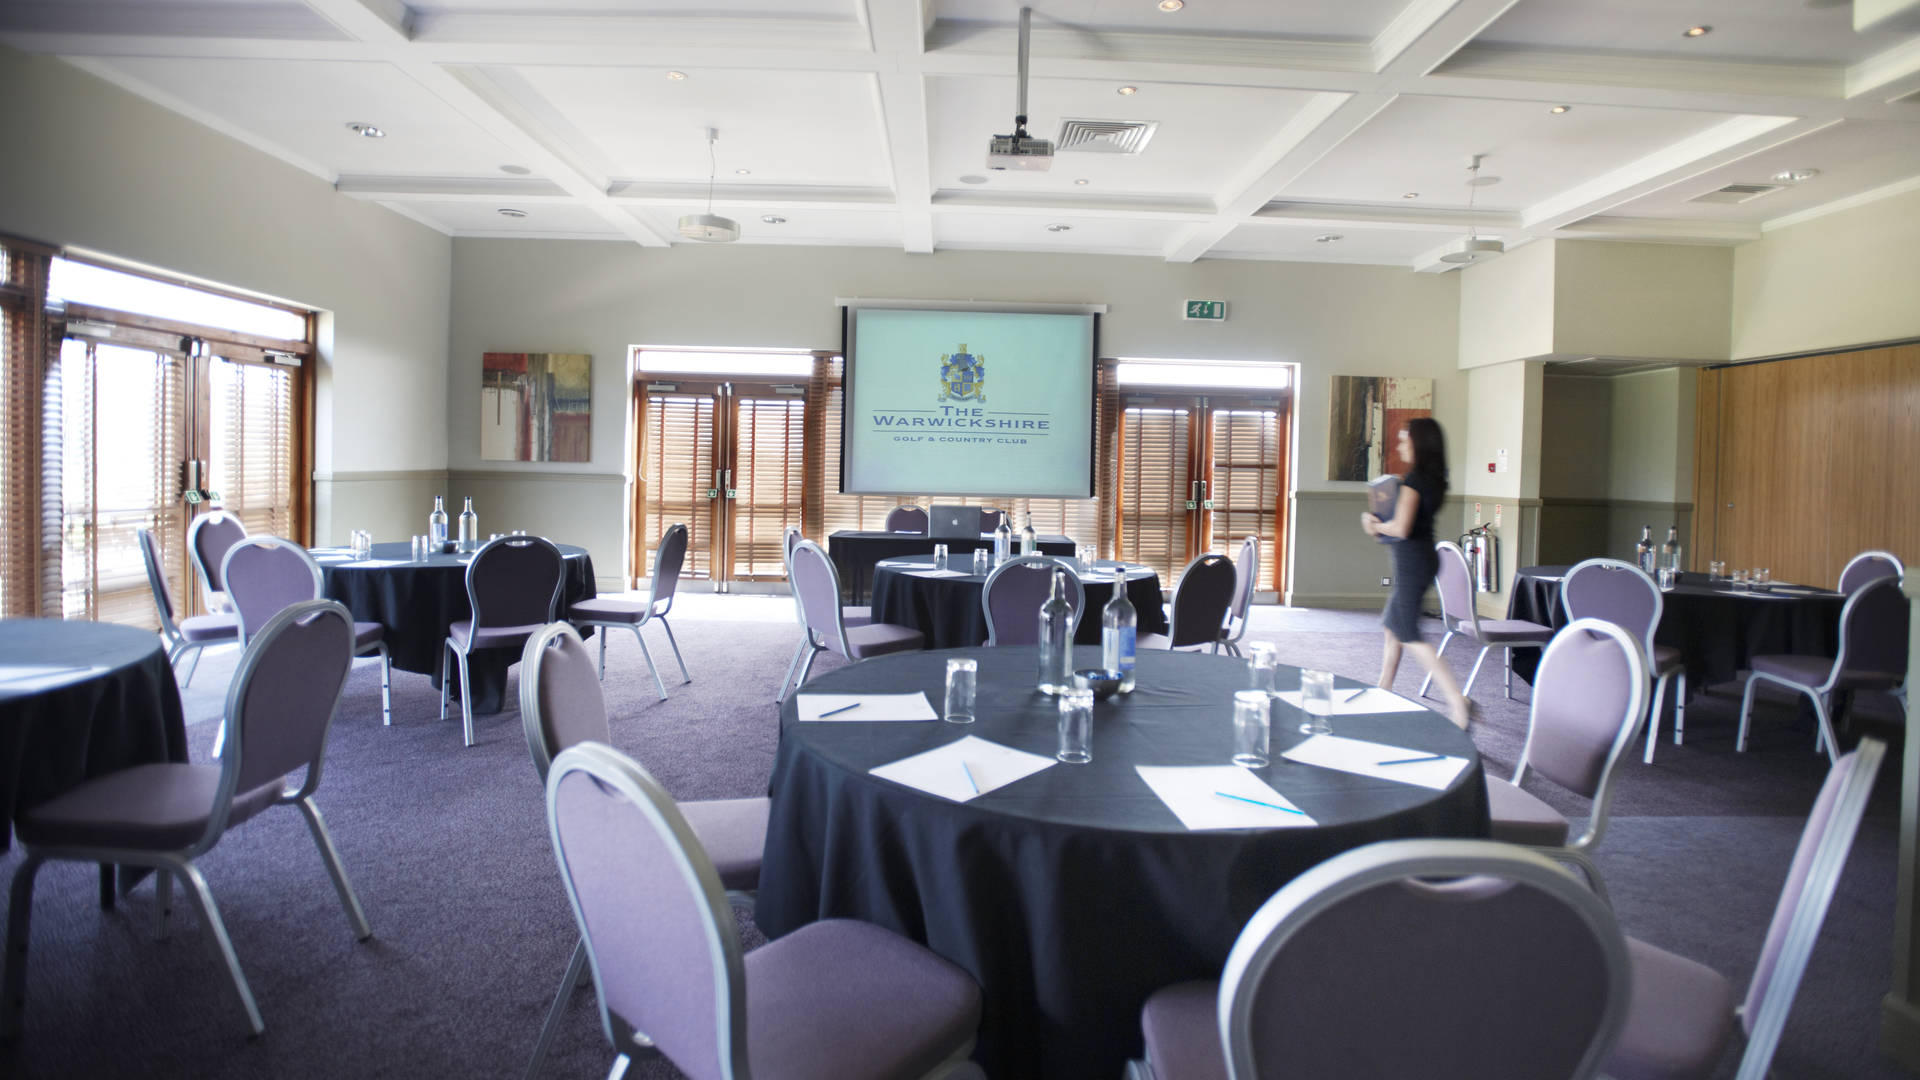 Meetings and Conferences at the Warwickshire Image